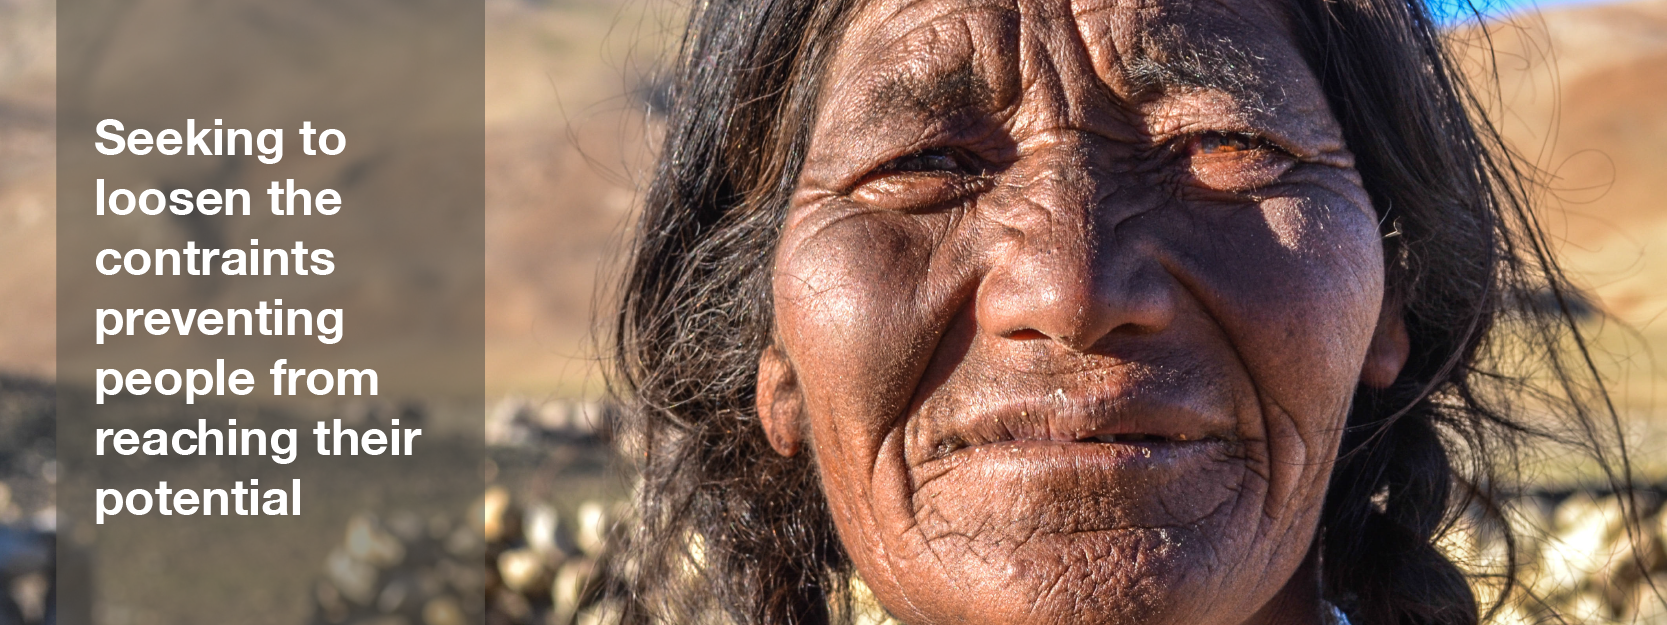 An older woman of the Ladakhi nomadic tribe in India.